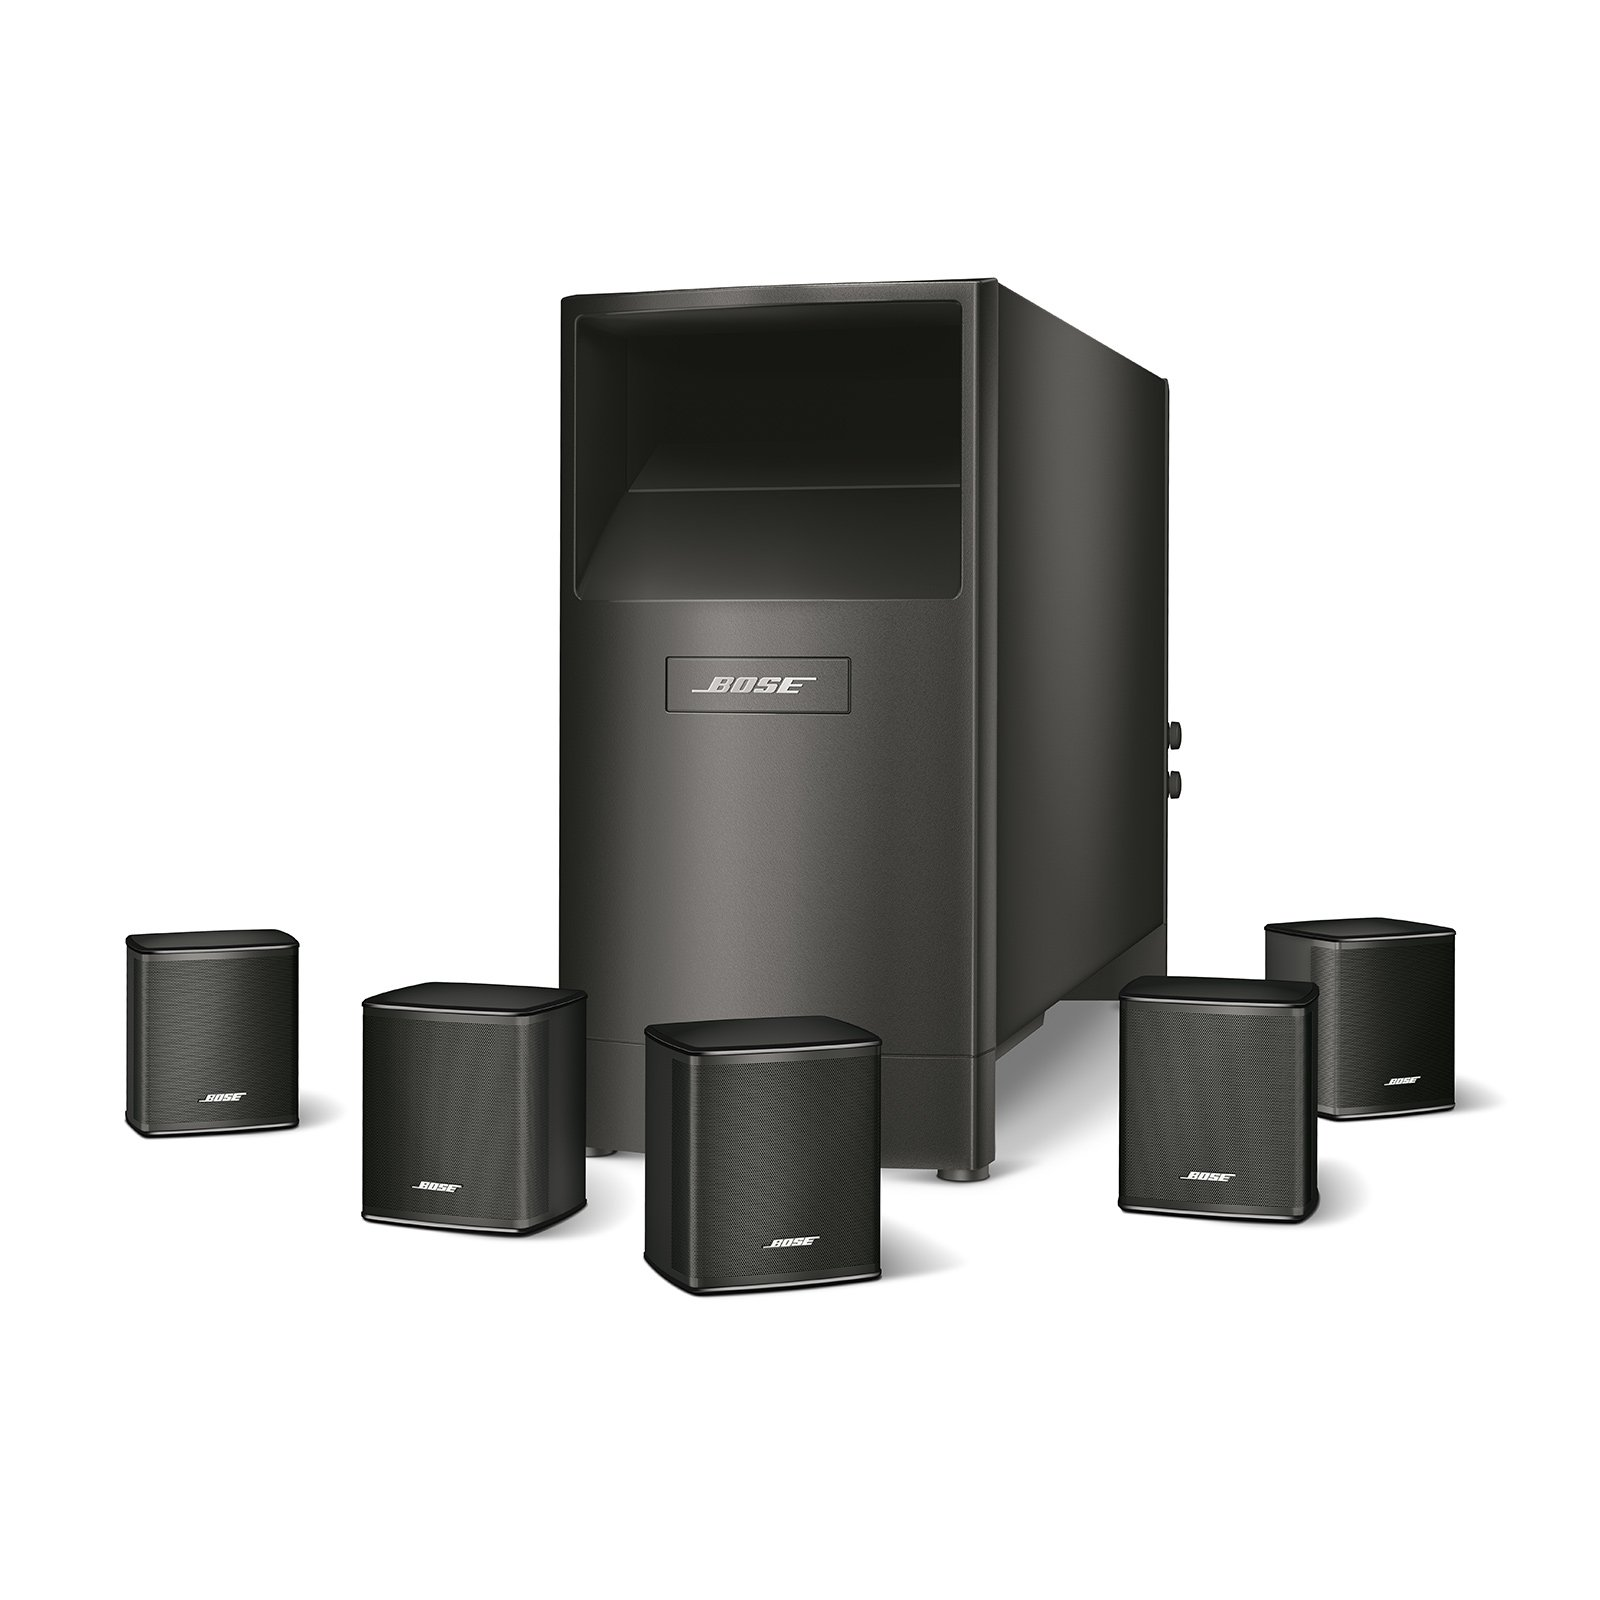 Bose Acoustimass 6 Series V Home Theater Speaker System (Black) by Bose